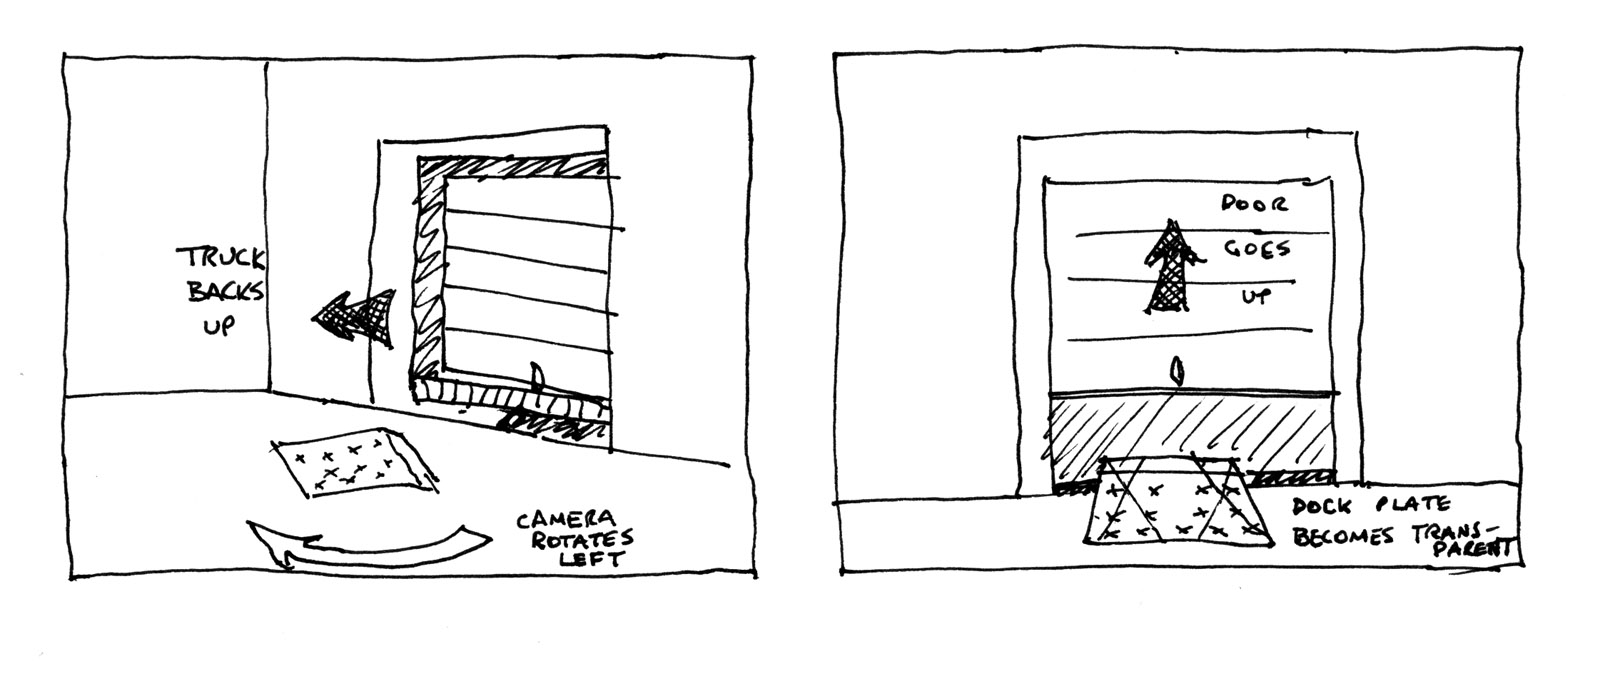 Two storyboard panels, outlining the action of the animation.